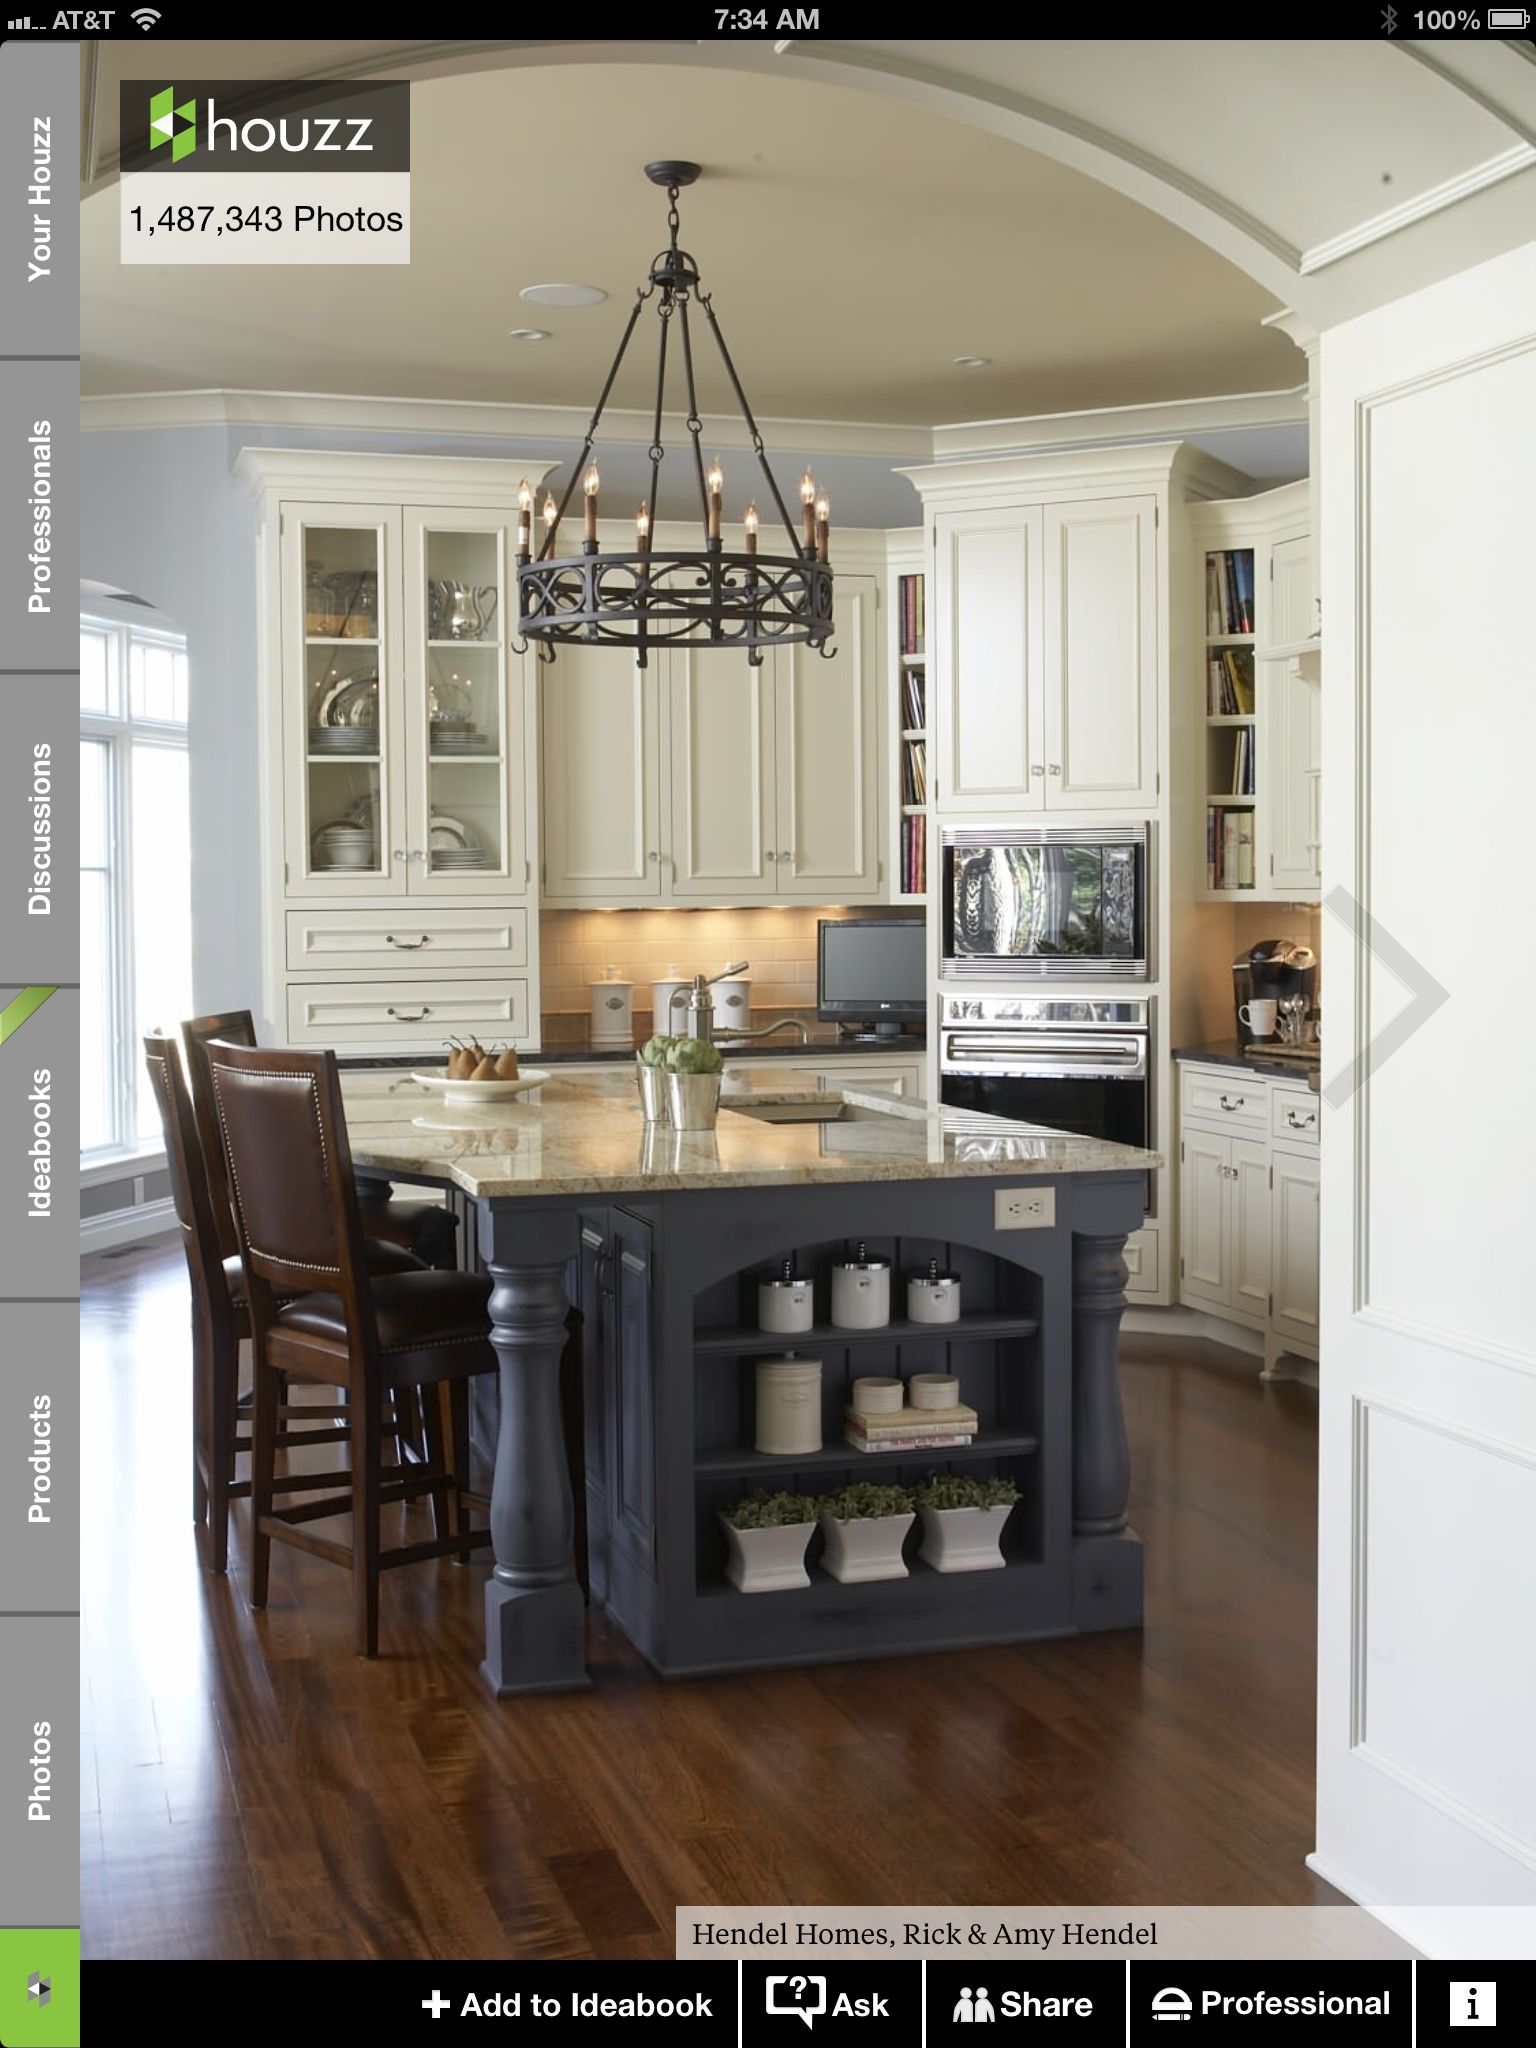 This one right here is my dream kitchen white and blue colors I